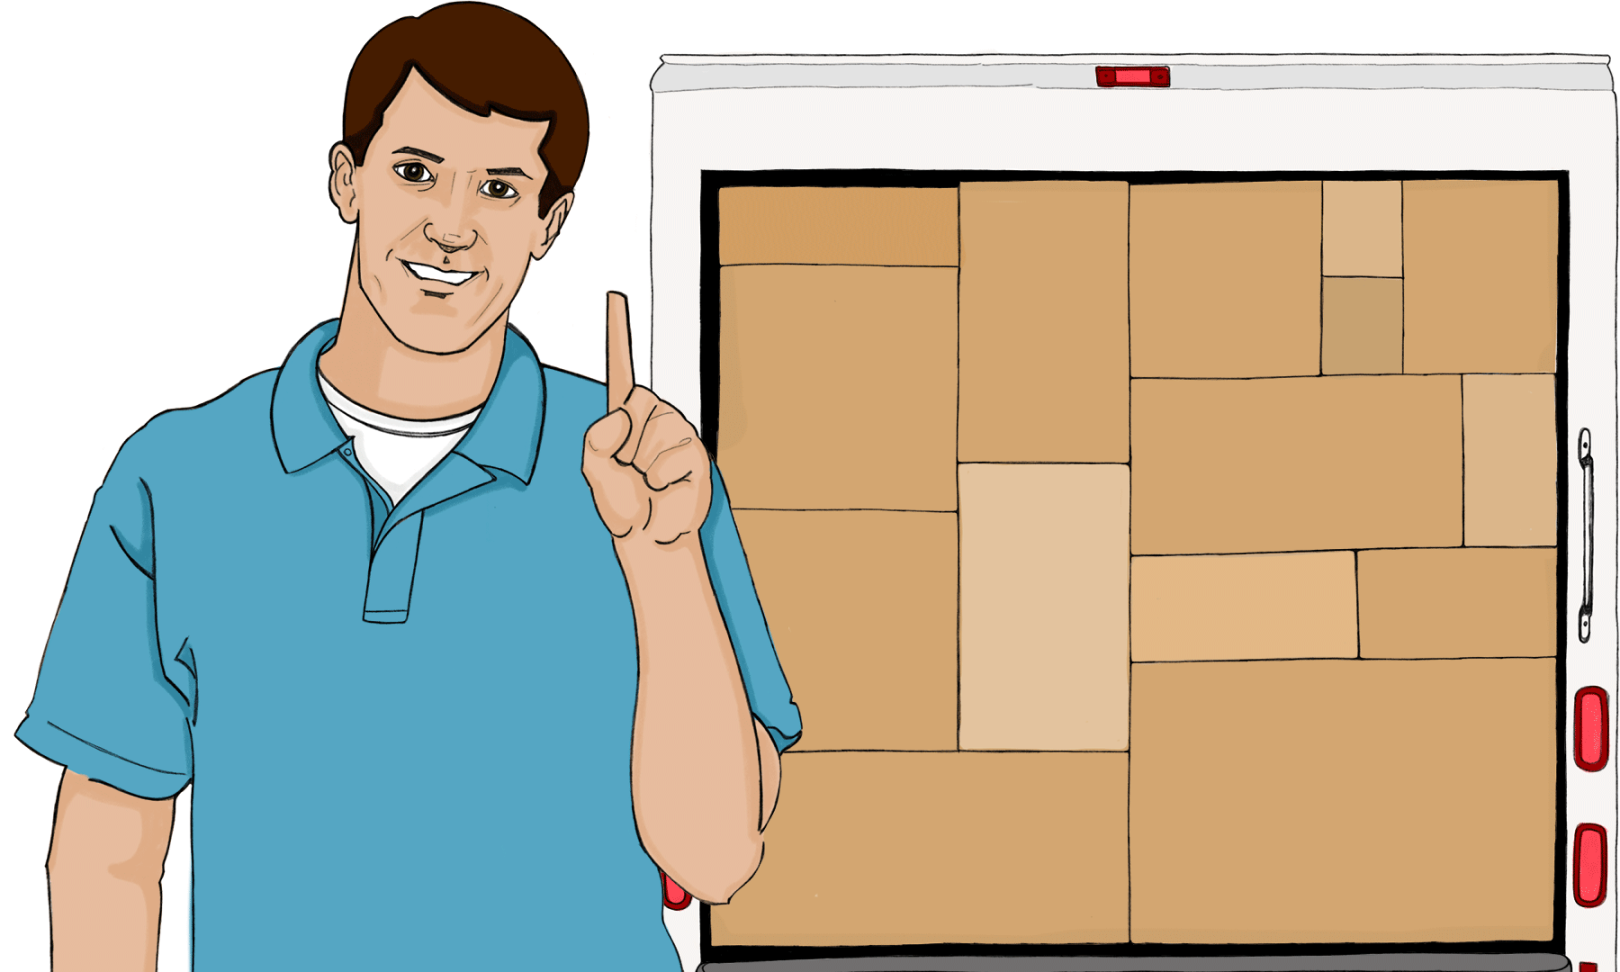 Man holding up finger standing in front of moving truck